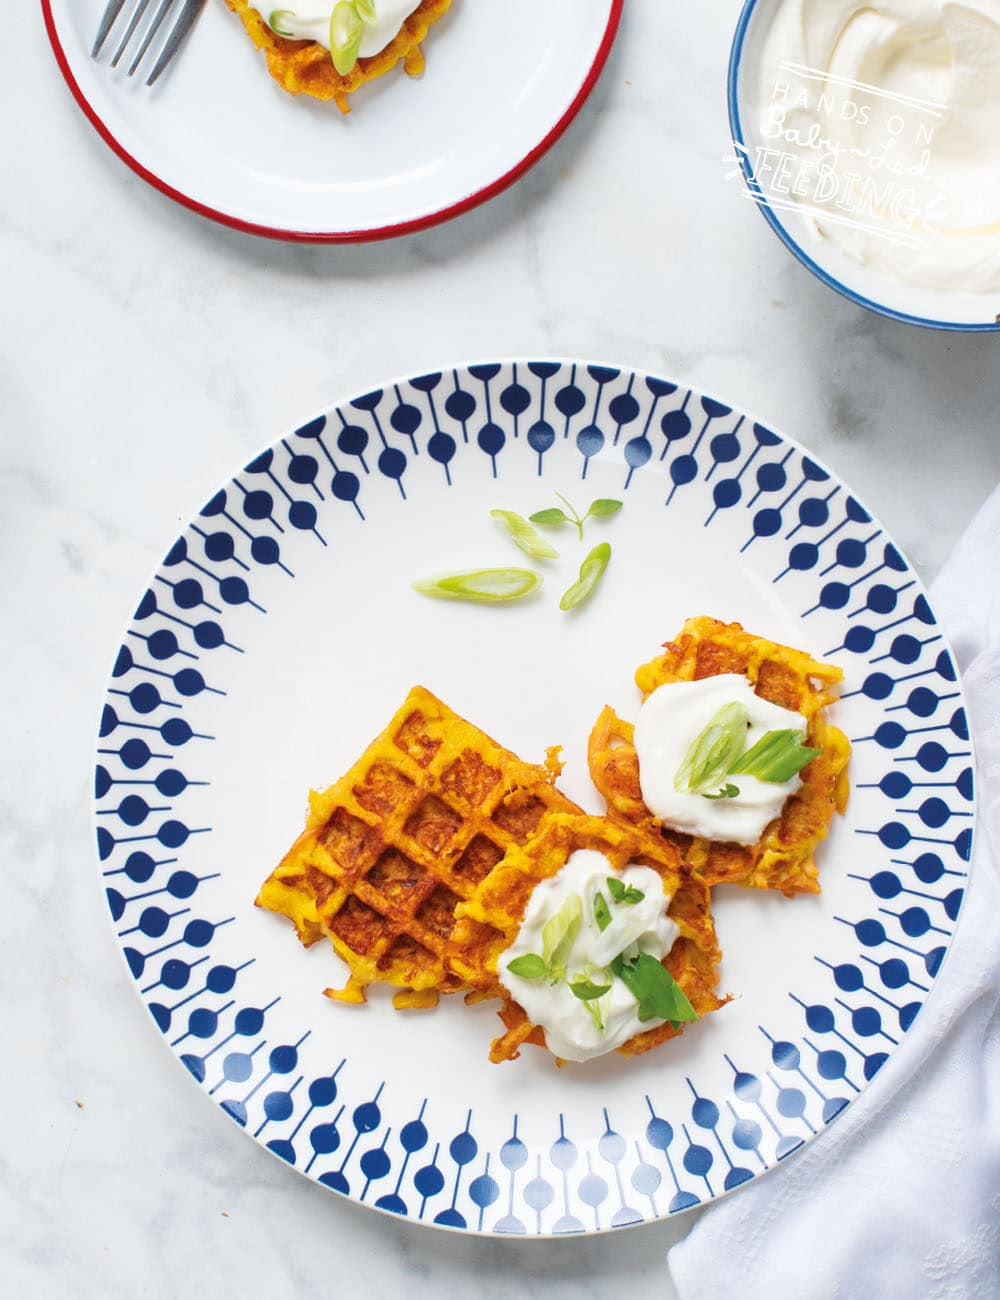 Baby Led weaning Carrot and Cheese Waffles Recipe Images5